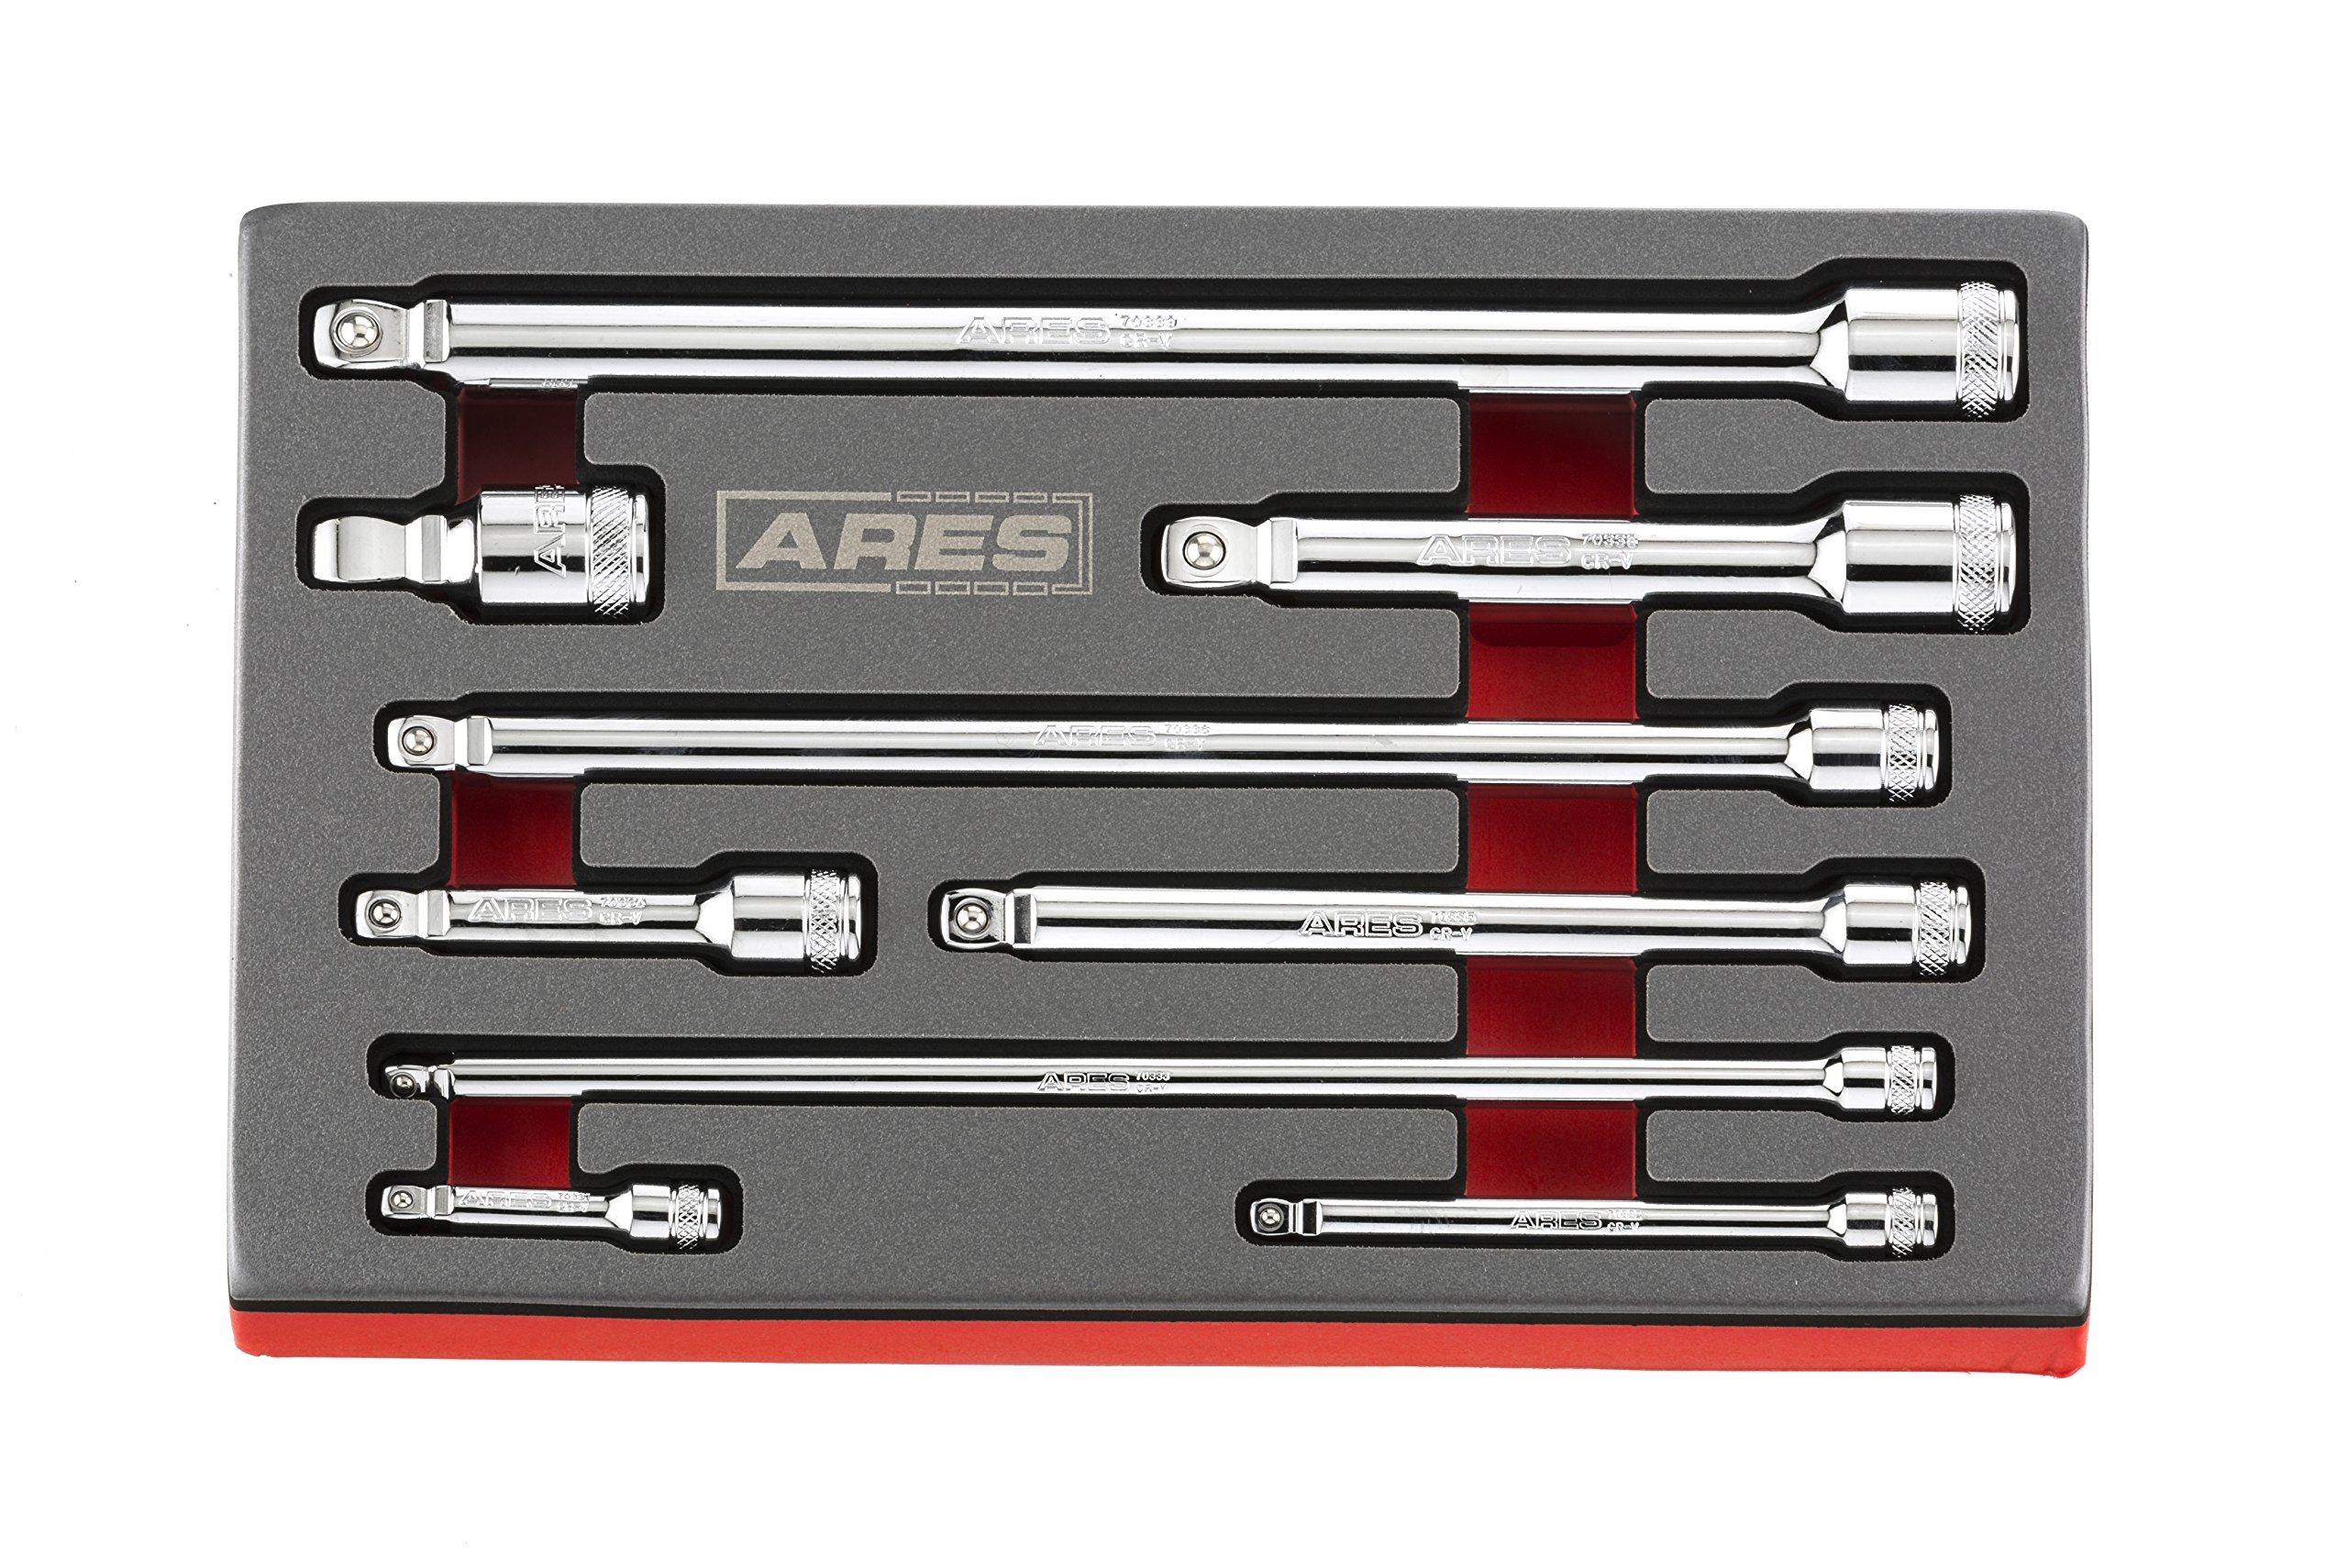 ARES 70330 - 9-Piece Wobble Extension Set - Premium Chrome Vanadium Steel Construction - 1/4-inch, 3/8-inch and 1/2-inch Drive Sizes Included - Storage Tray Included